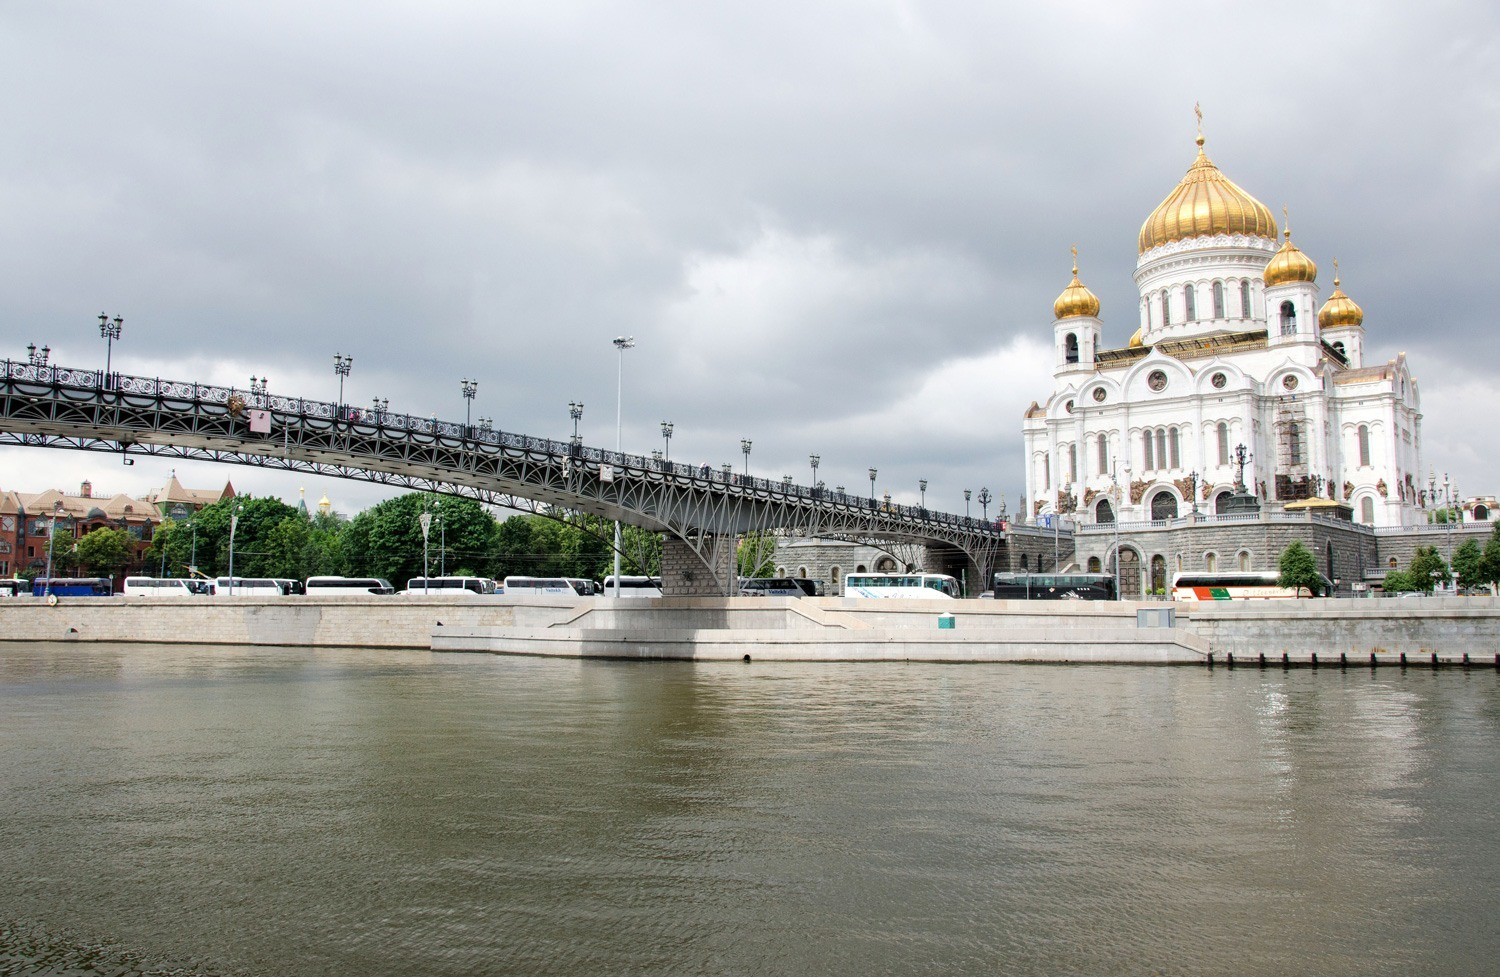 Cathedral of Christ the Saviour  - Small Things in Big Numbers